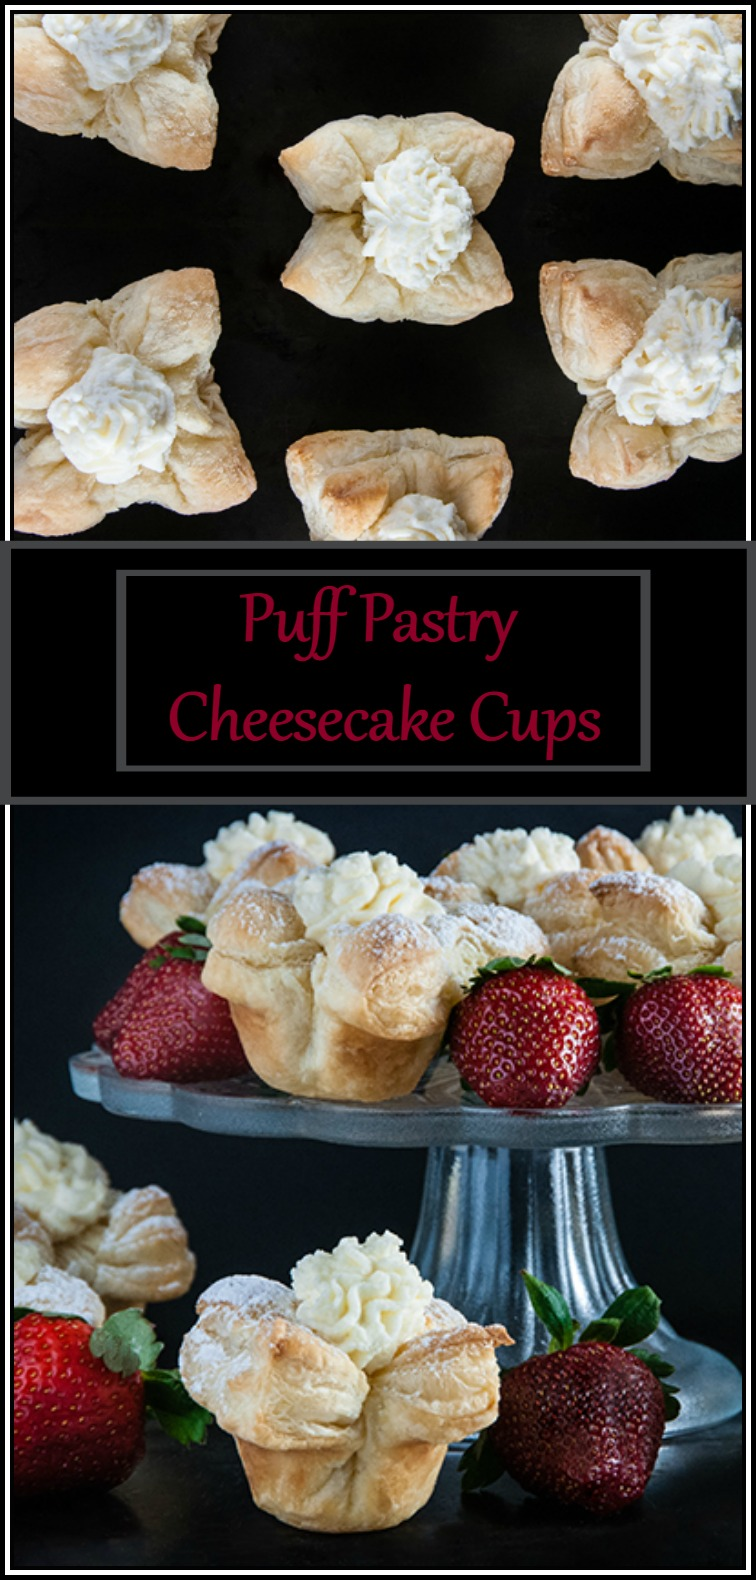 Easy Puff Pastry Cheesecake Cups from www.SeasonedSprinkles.com